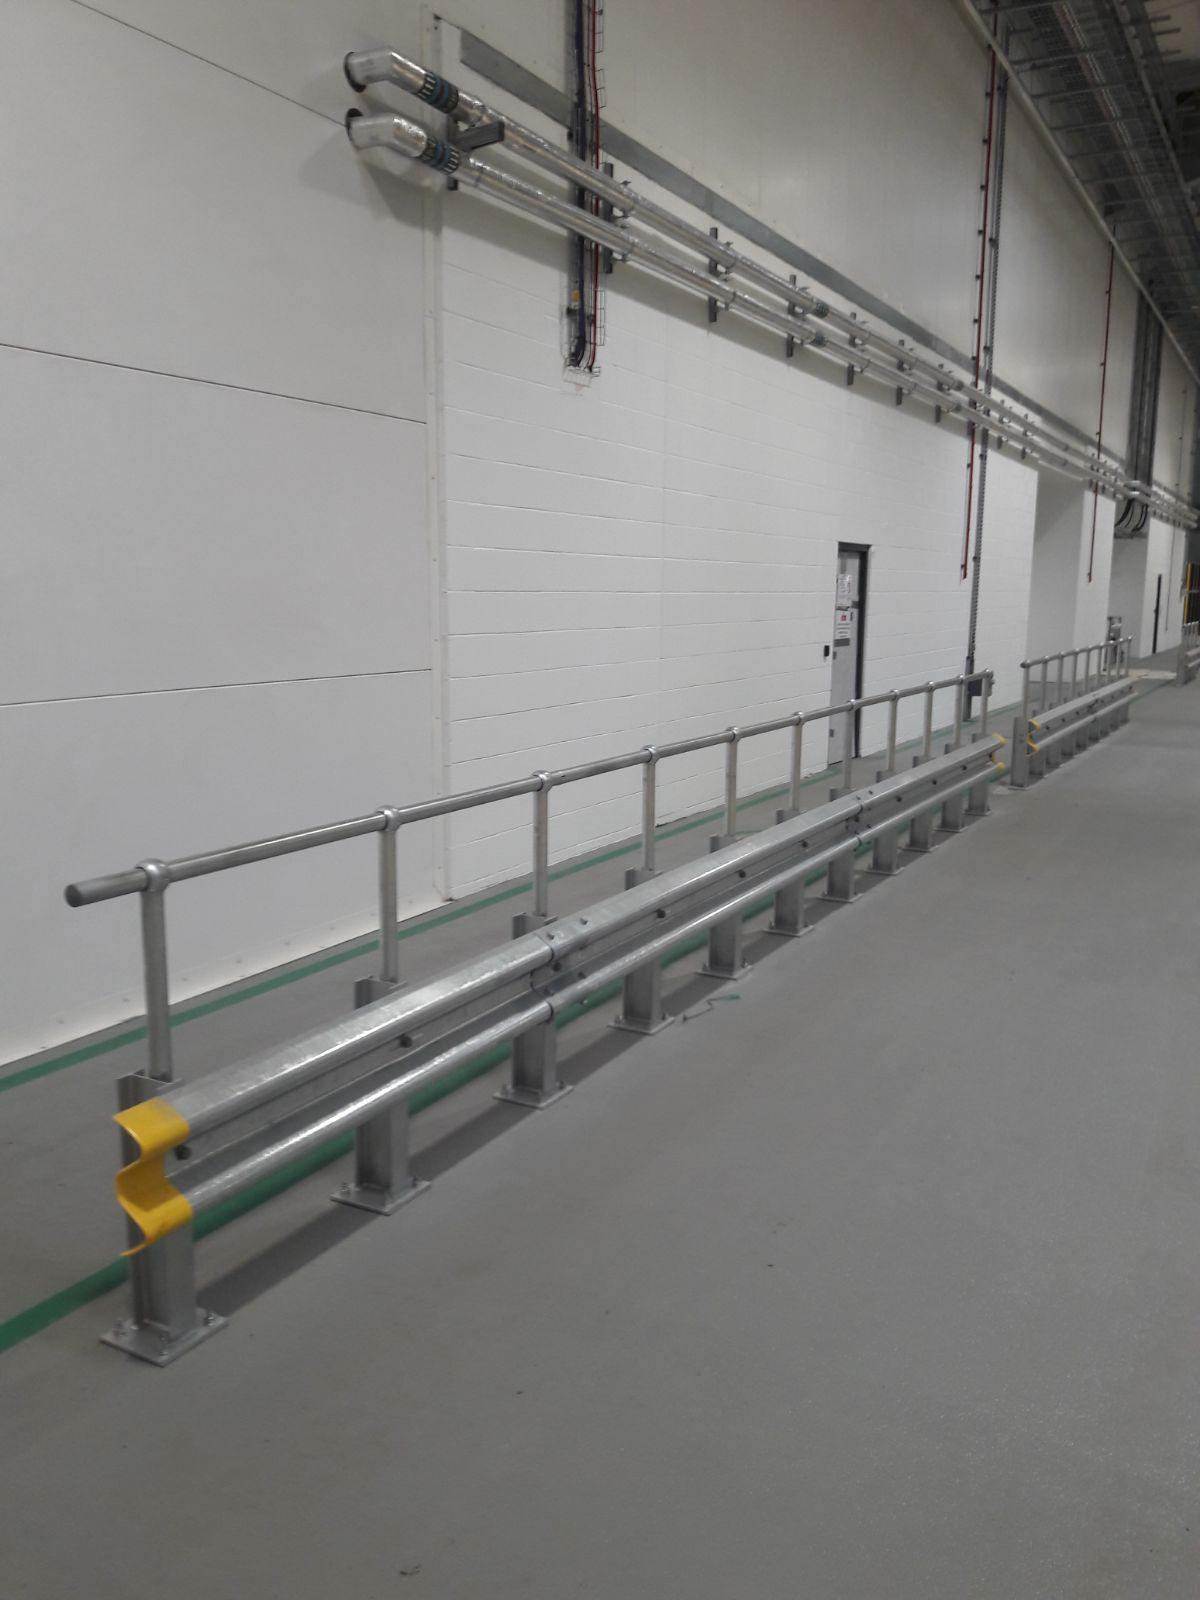 armco with handrail